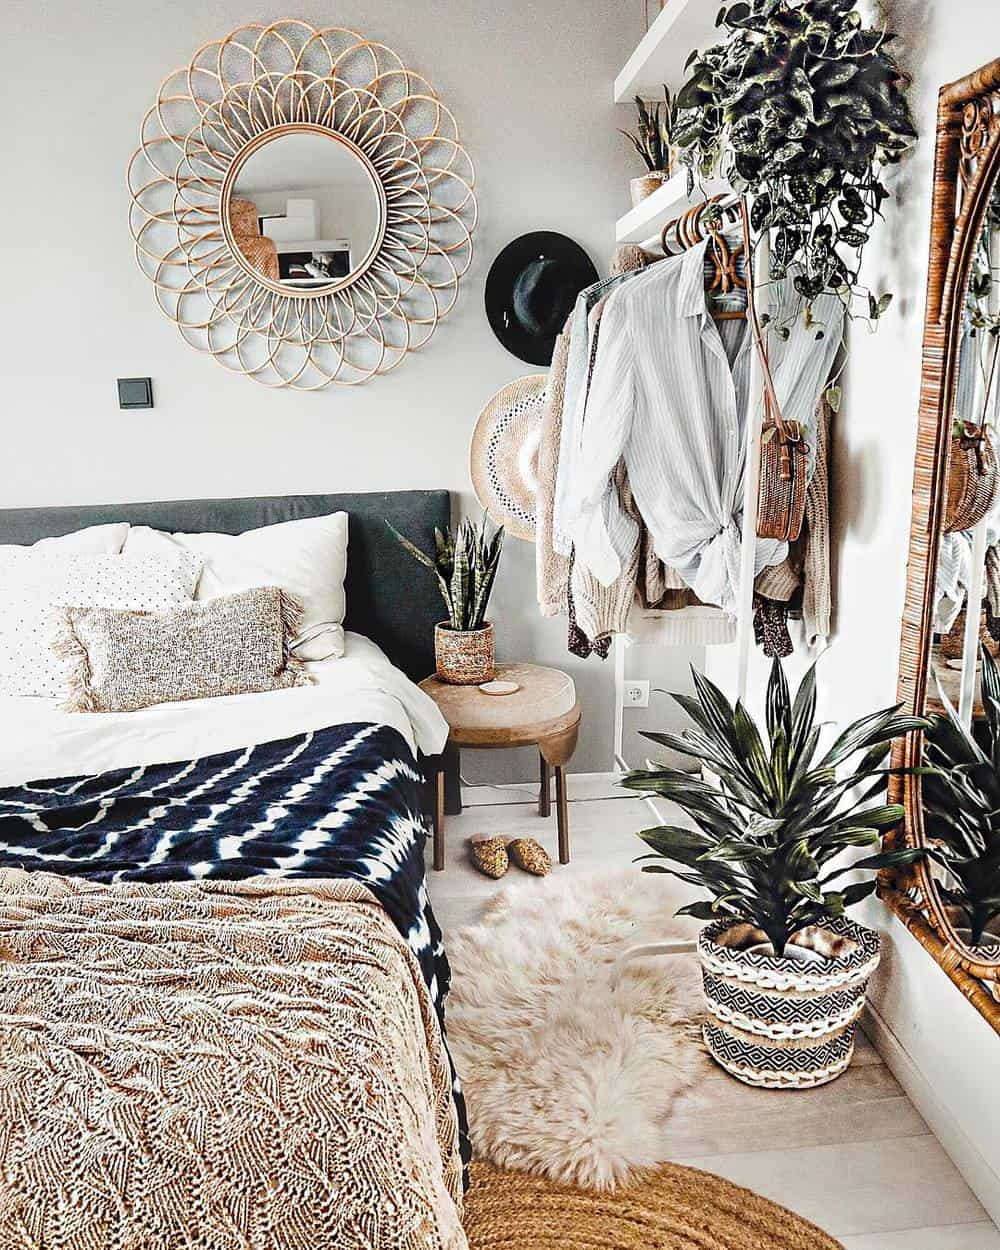 65 Amazing Small Bedroom Ideas to Create Space - Bohemian Ideas for Bright Look